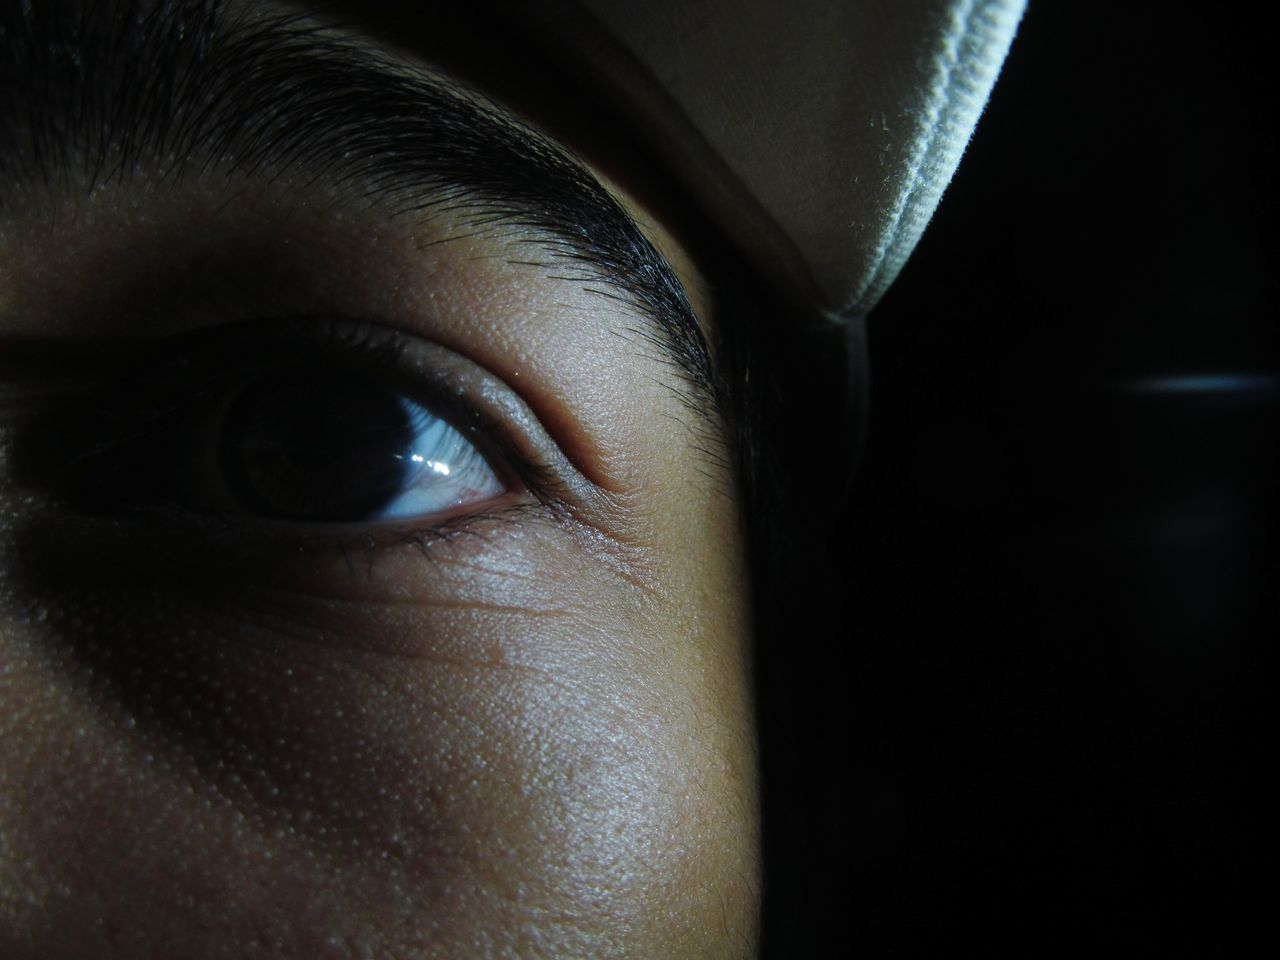 human eye, one person, close-up, human body part, real people, looking at camera, portrait, eyesight, eyelash, eyeball, women, sensory perception, eyebrow, young women, young adult, day, indoors, adult, people